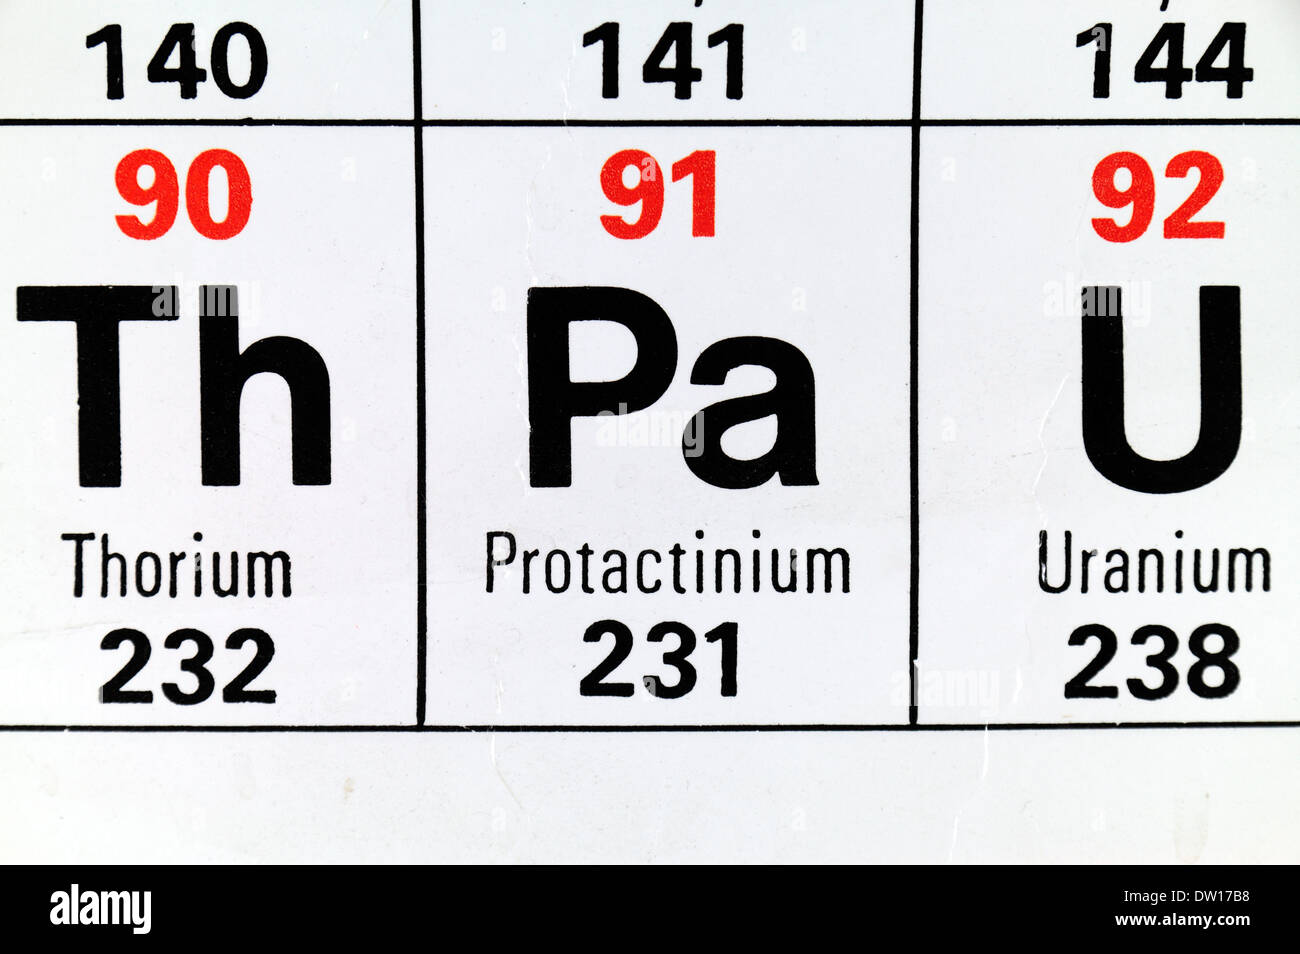 Protactinium pa as it appears on the periodic table stock photo protactinium pa as it appears on the periodic table gamestrikefo Image collections